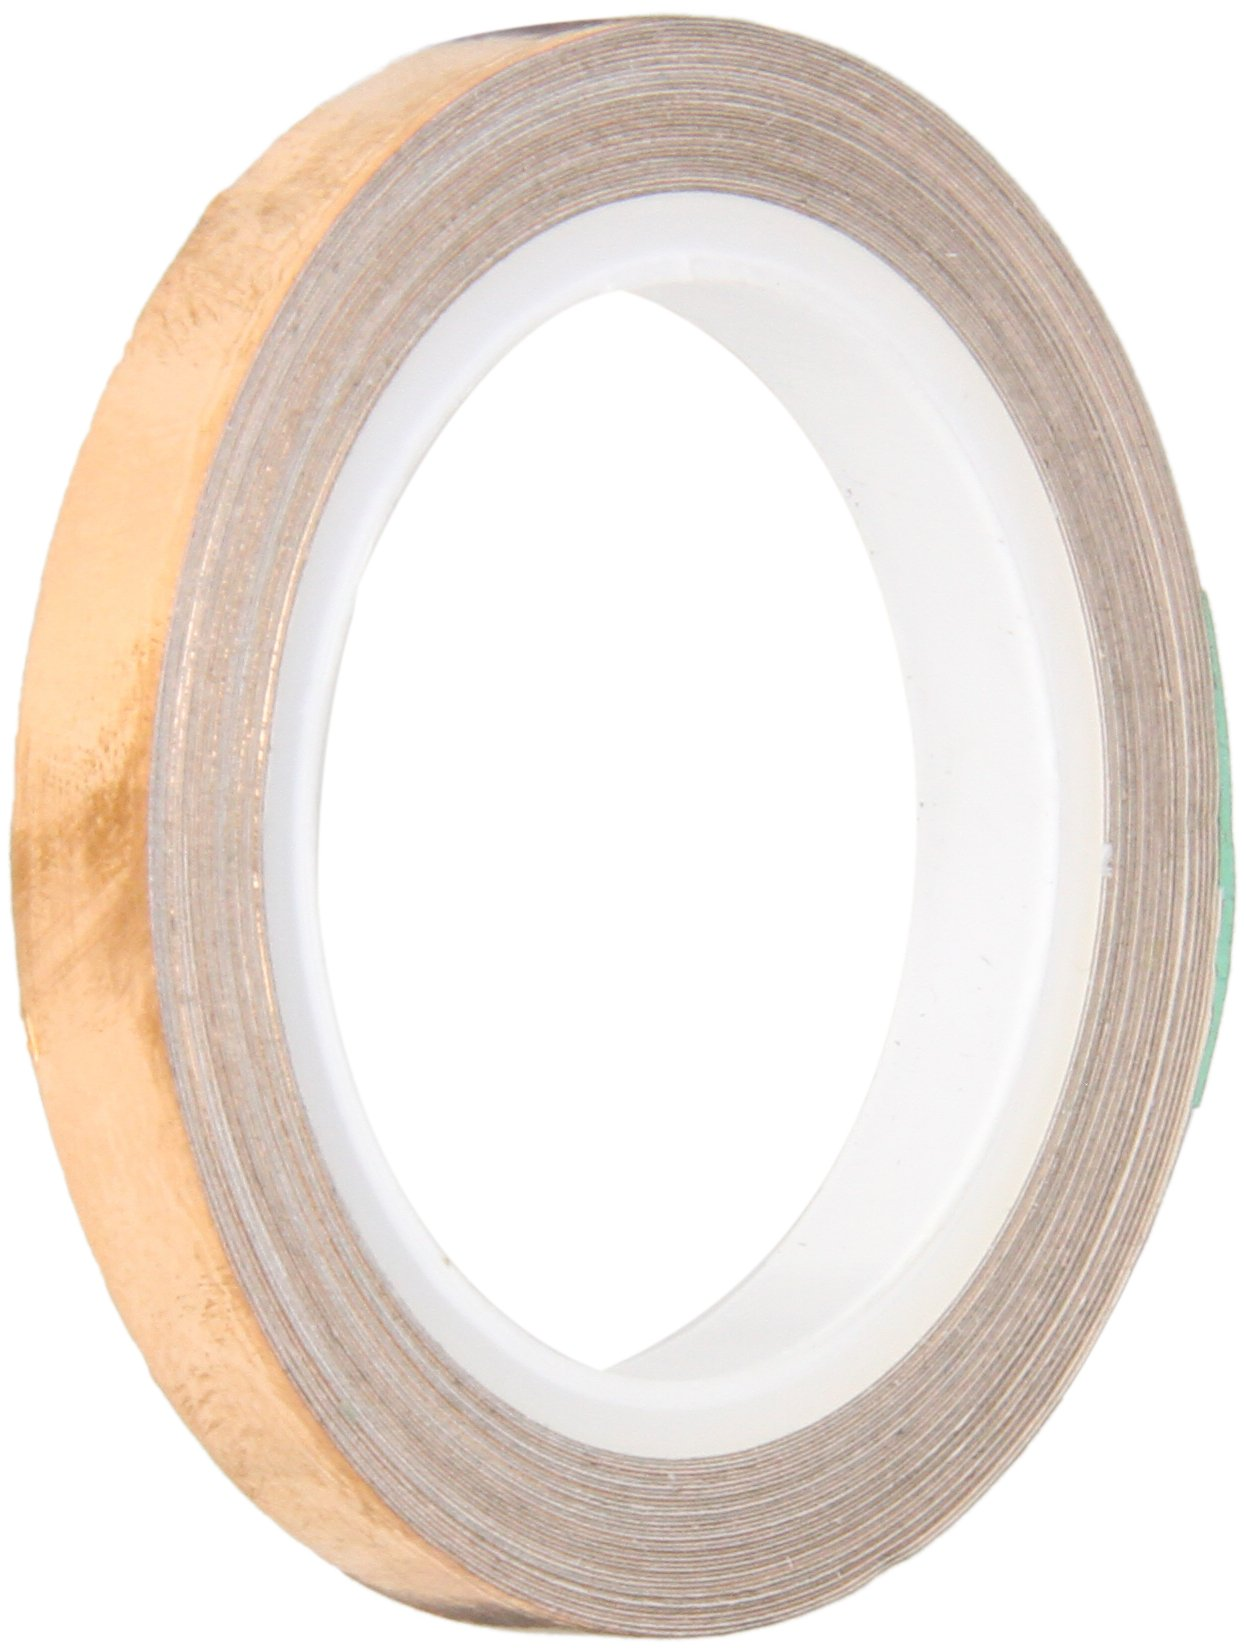 Cinta de Cobre 6mm x 5.5mt Adhesivo Conductor TAPECASE